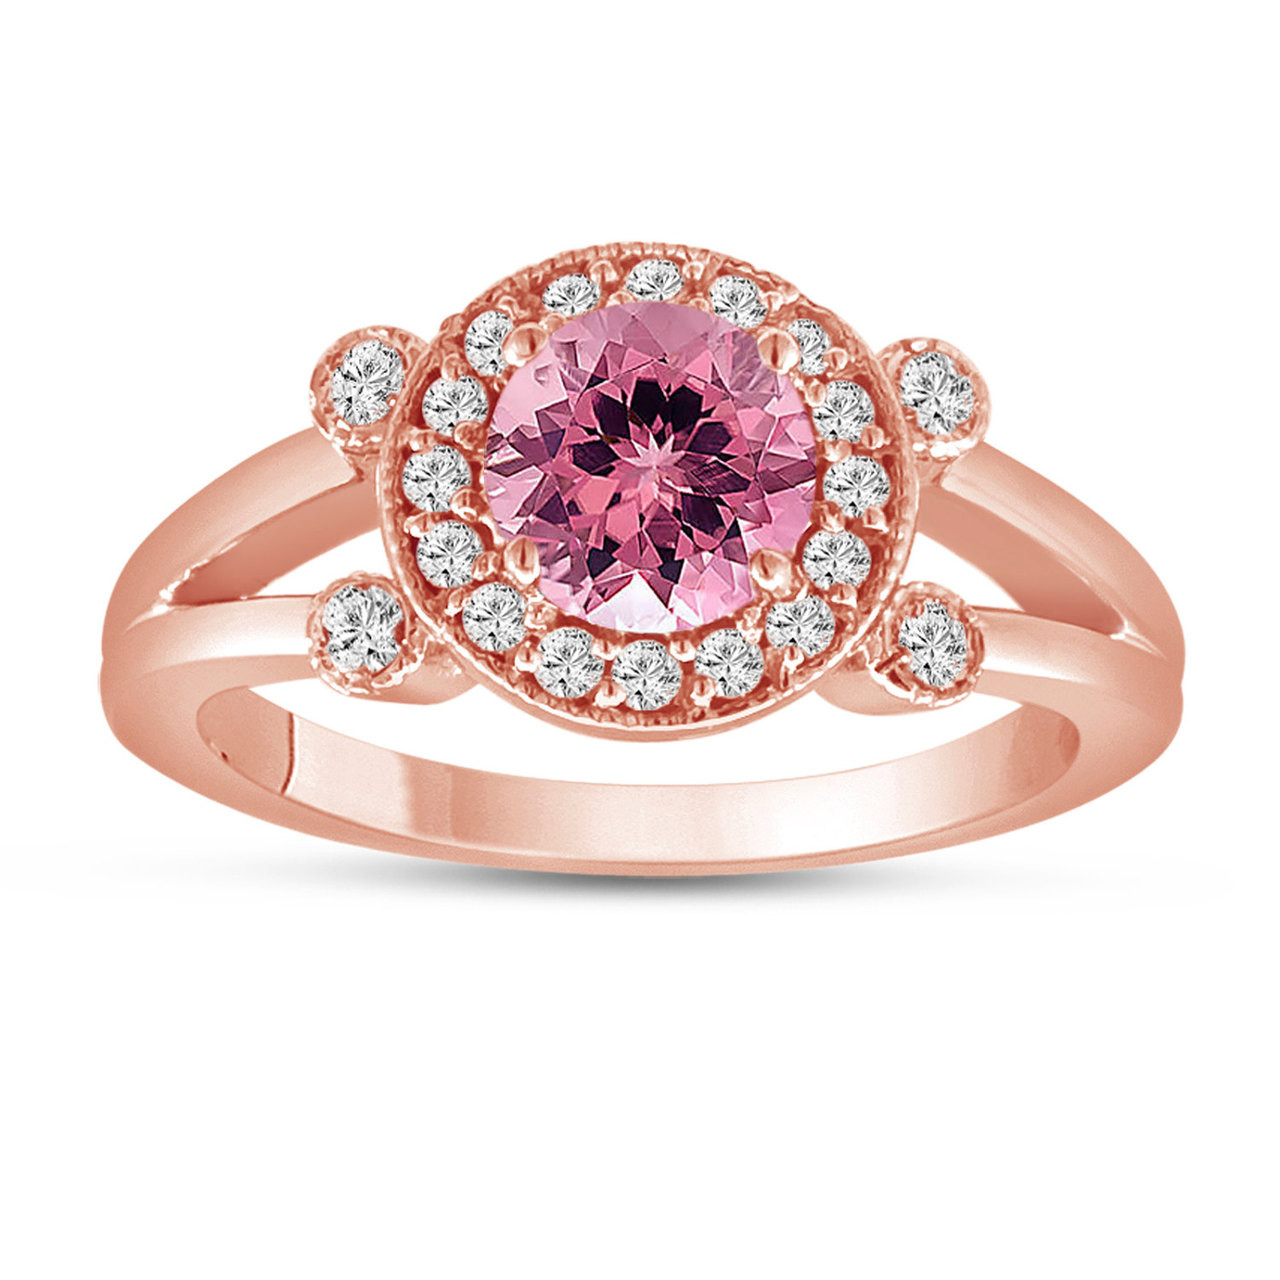 Pink Tourmaline and Diamond Engagement Ring 14k Rose Gold Unique ...